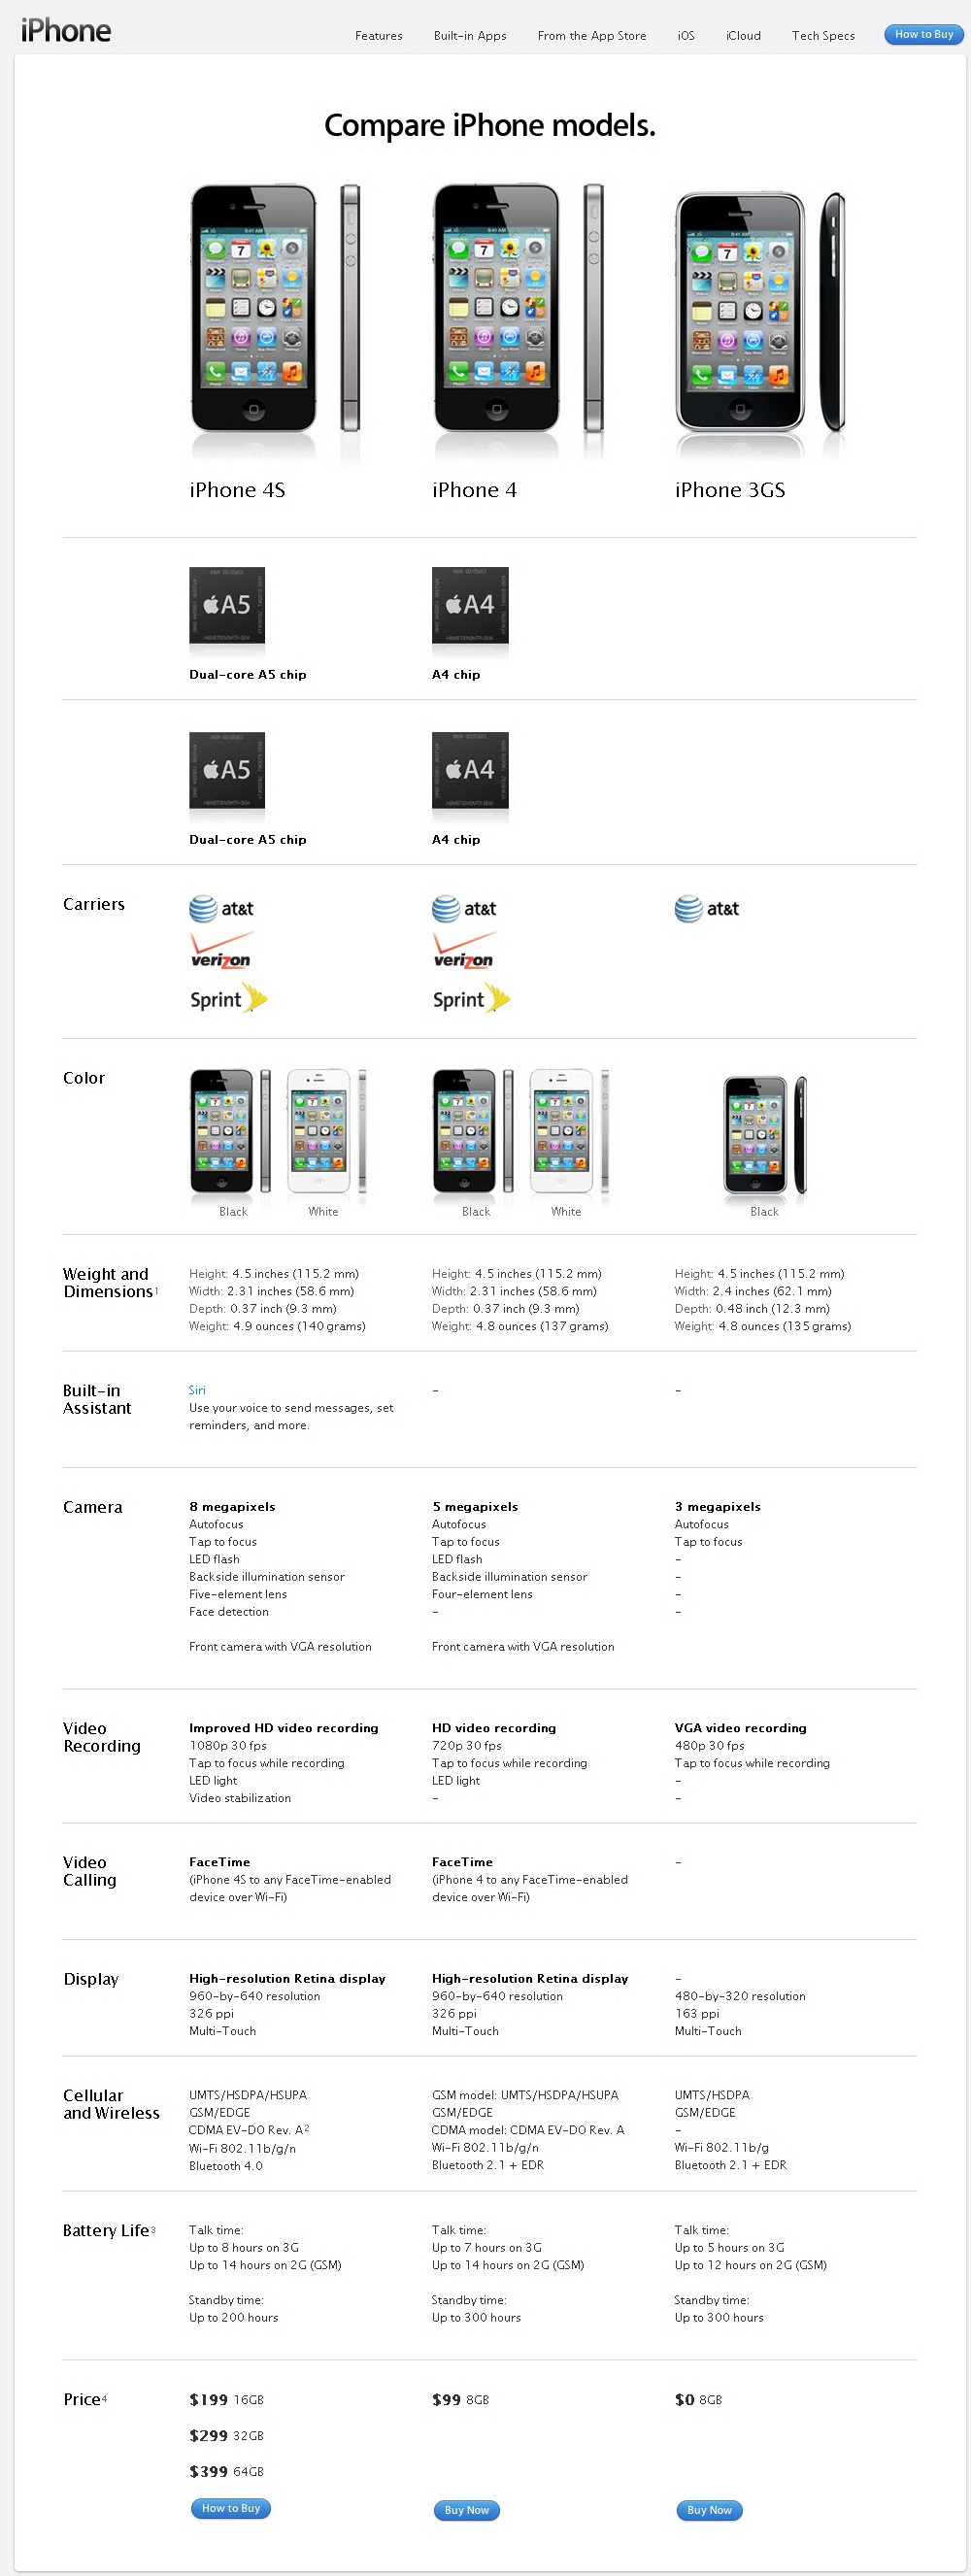 compare iphone models comparison chart iphone 4s vs iphone 4 vs iphone 3gs 1600